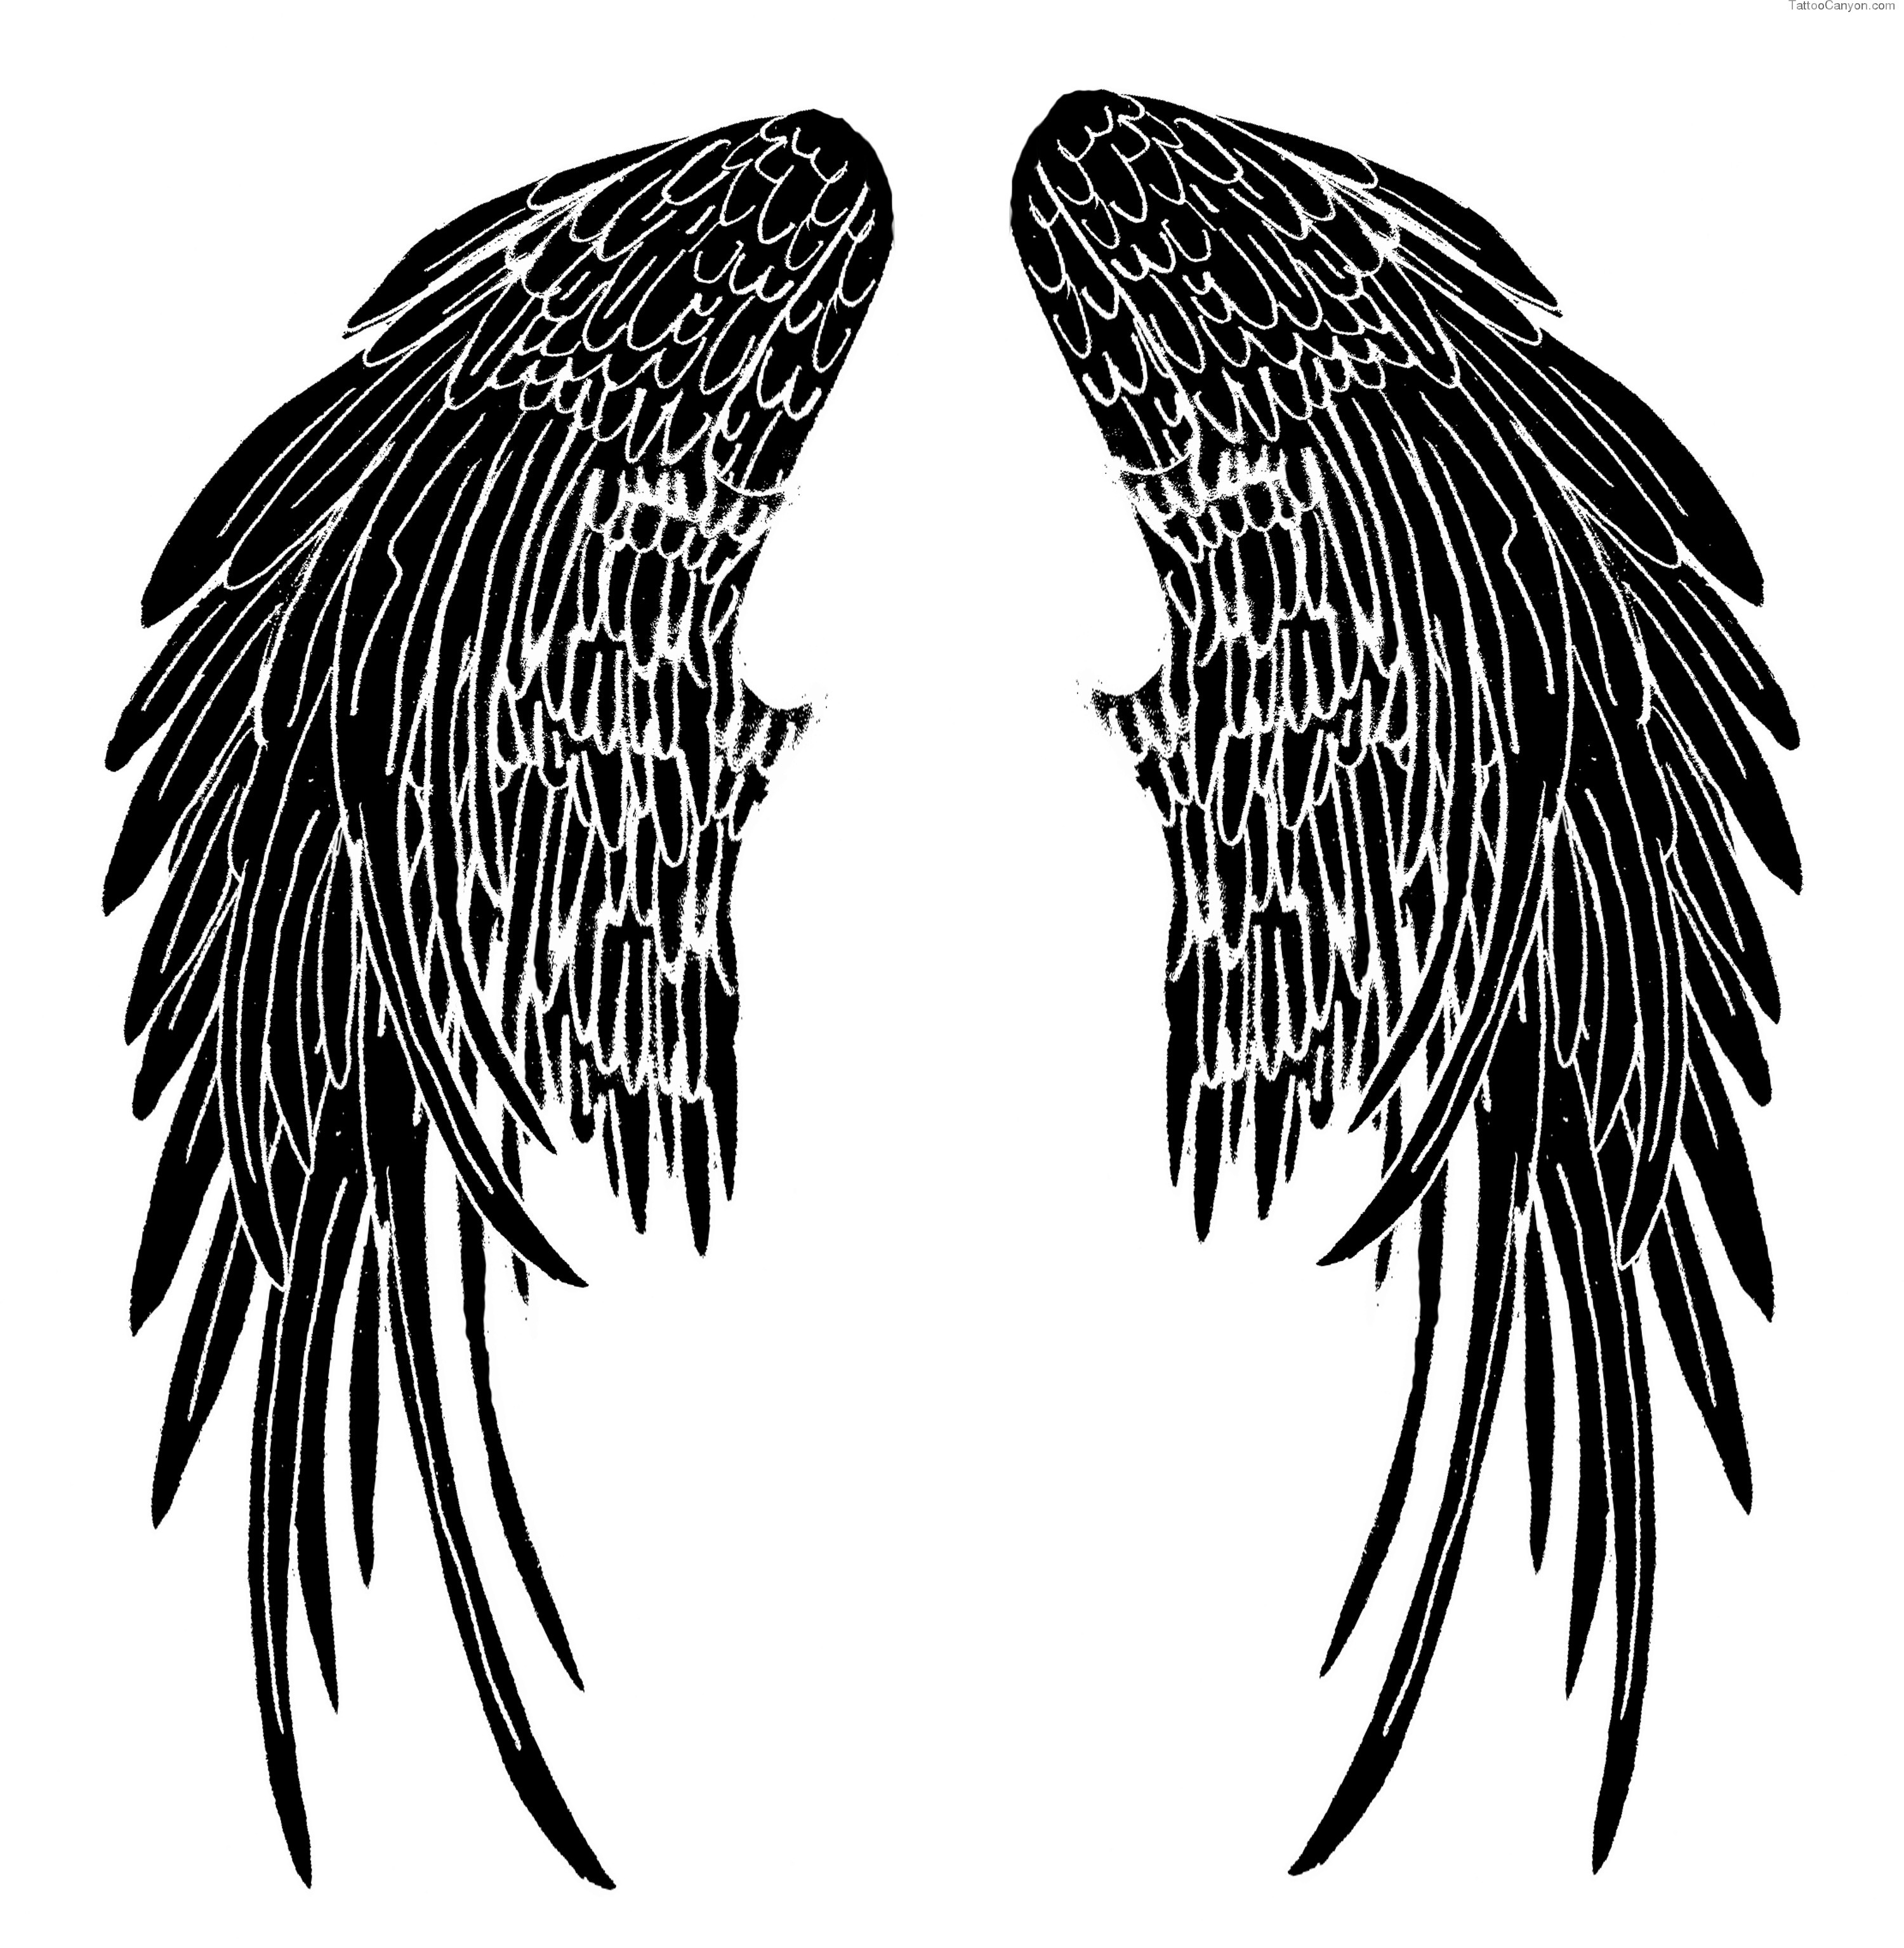 Eagle wings design clipart panda free clipart images for Eagle wings tattoo